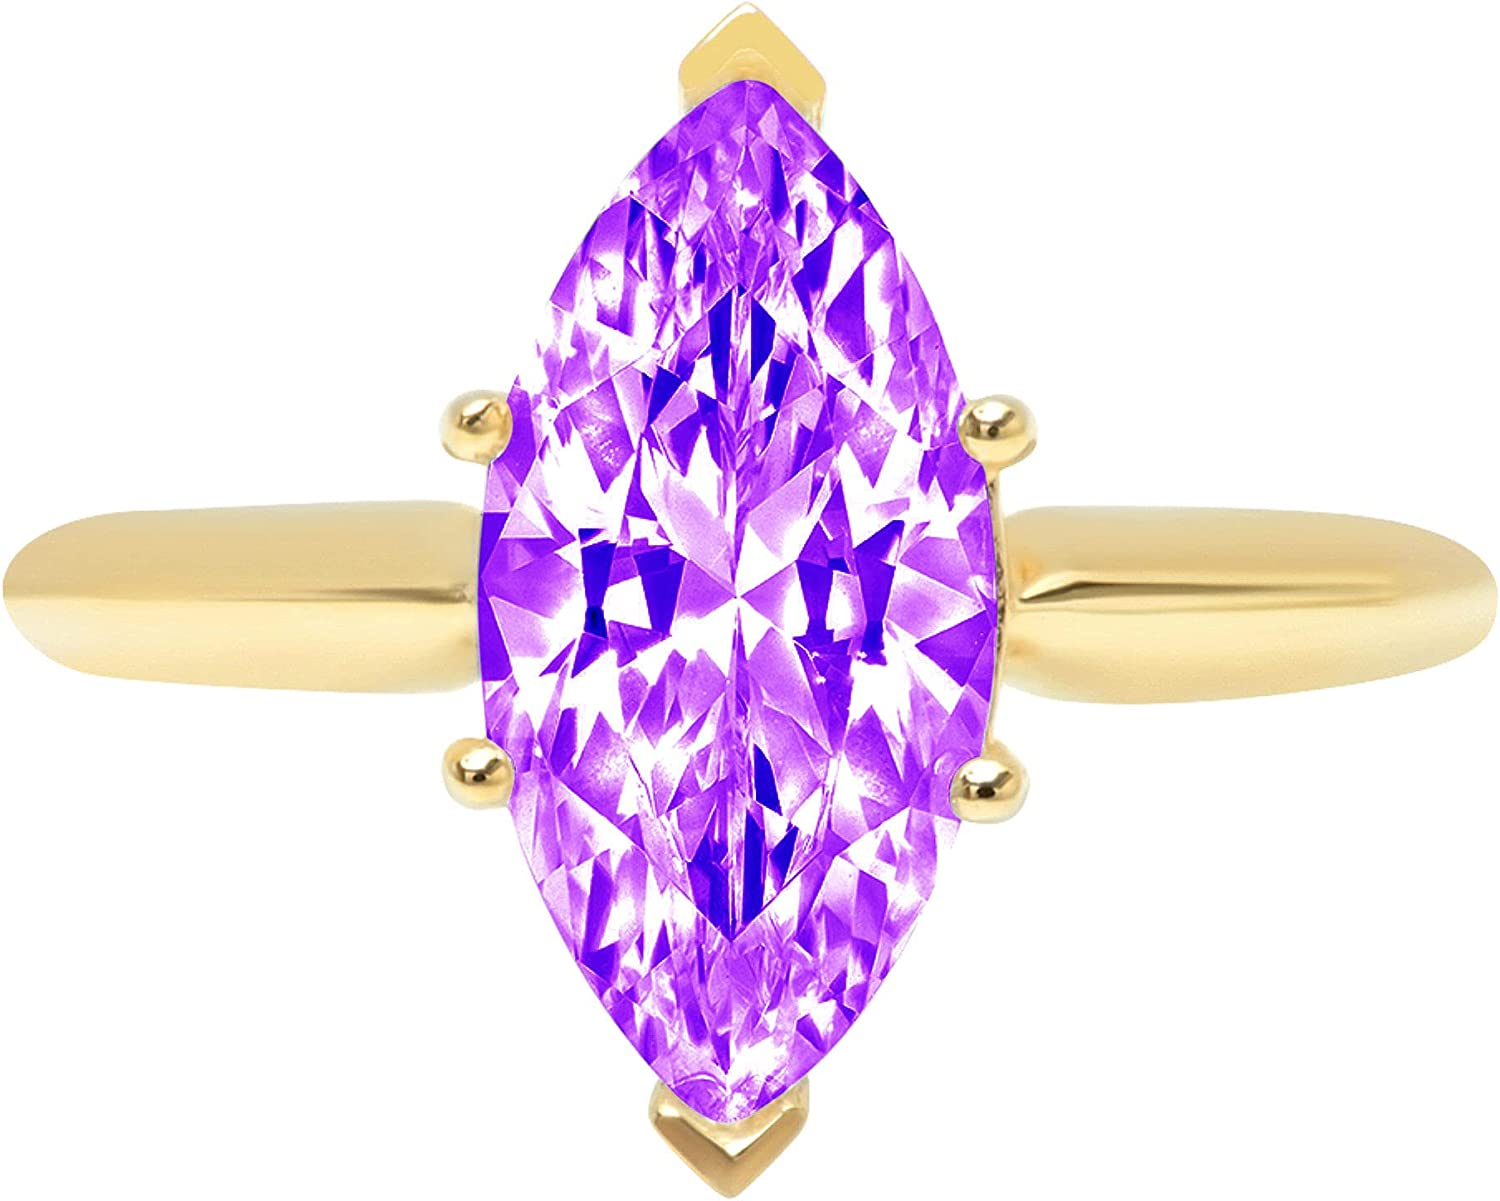 2.4ct Brilliant Marquise Cut Solitaire Natural Purple Amethyst Ideal VVS1 6-Prong Engagement Wedding Bridal Promise Anniversary Ring Solid 14k Yellow Gold for Women